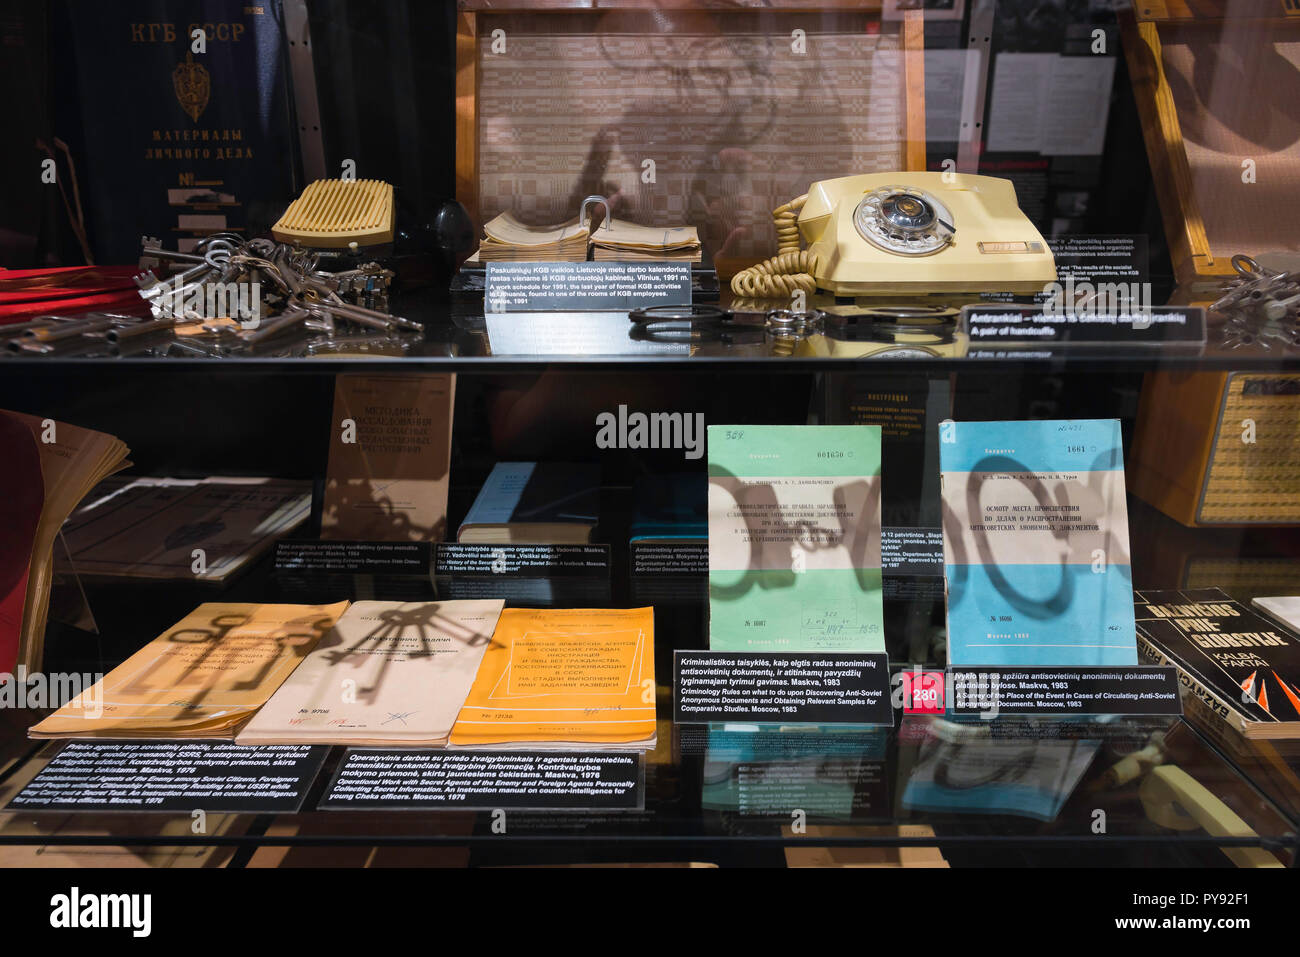 Vilnius Museum of Genocide Victims, view of a display in the museum showing Soviet surveillance equipment and artifacts, Lithuania. - Stock Image